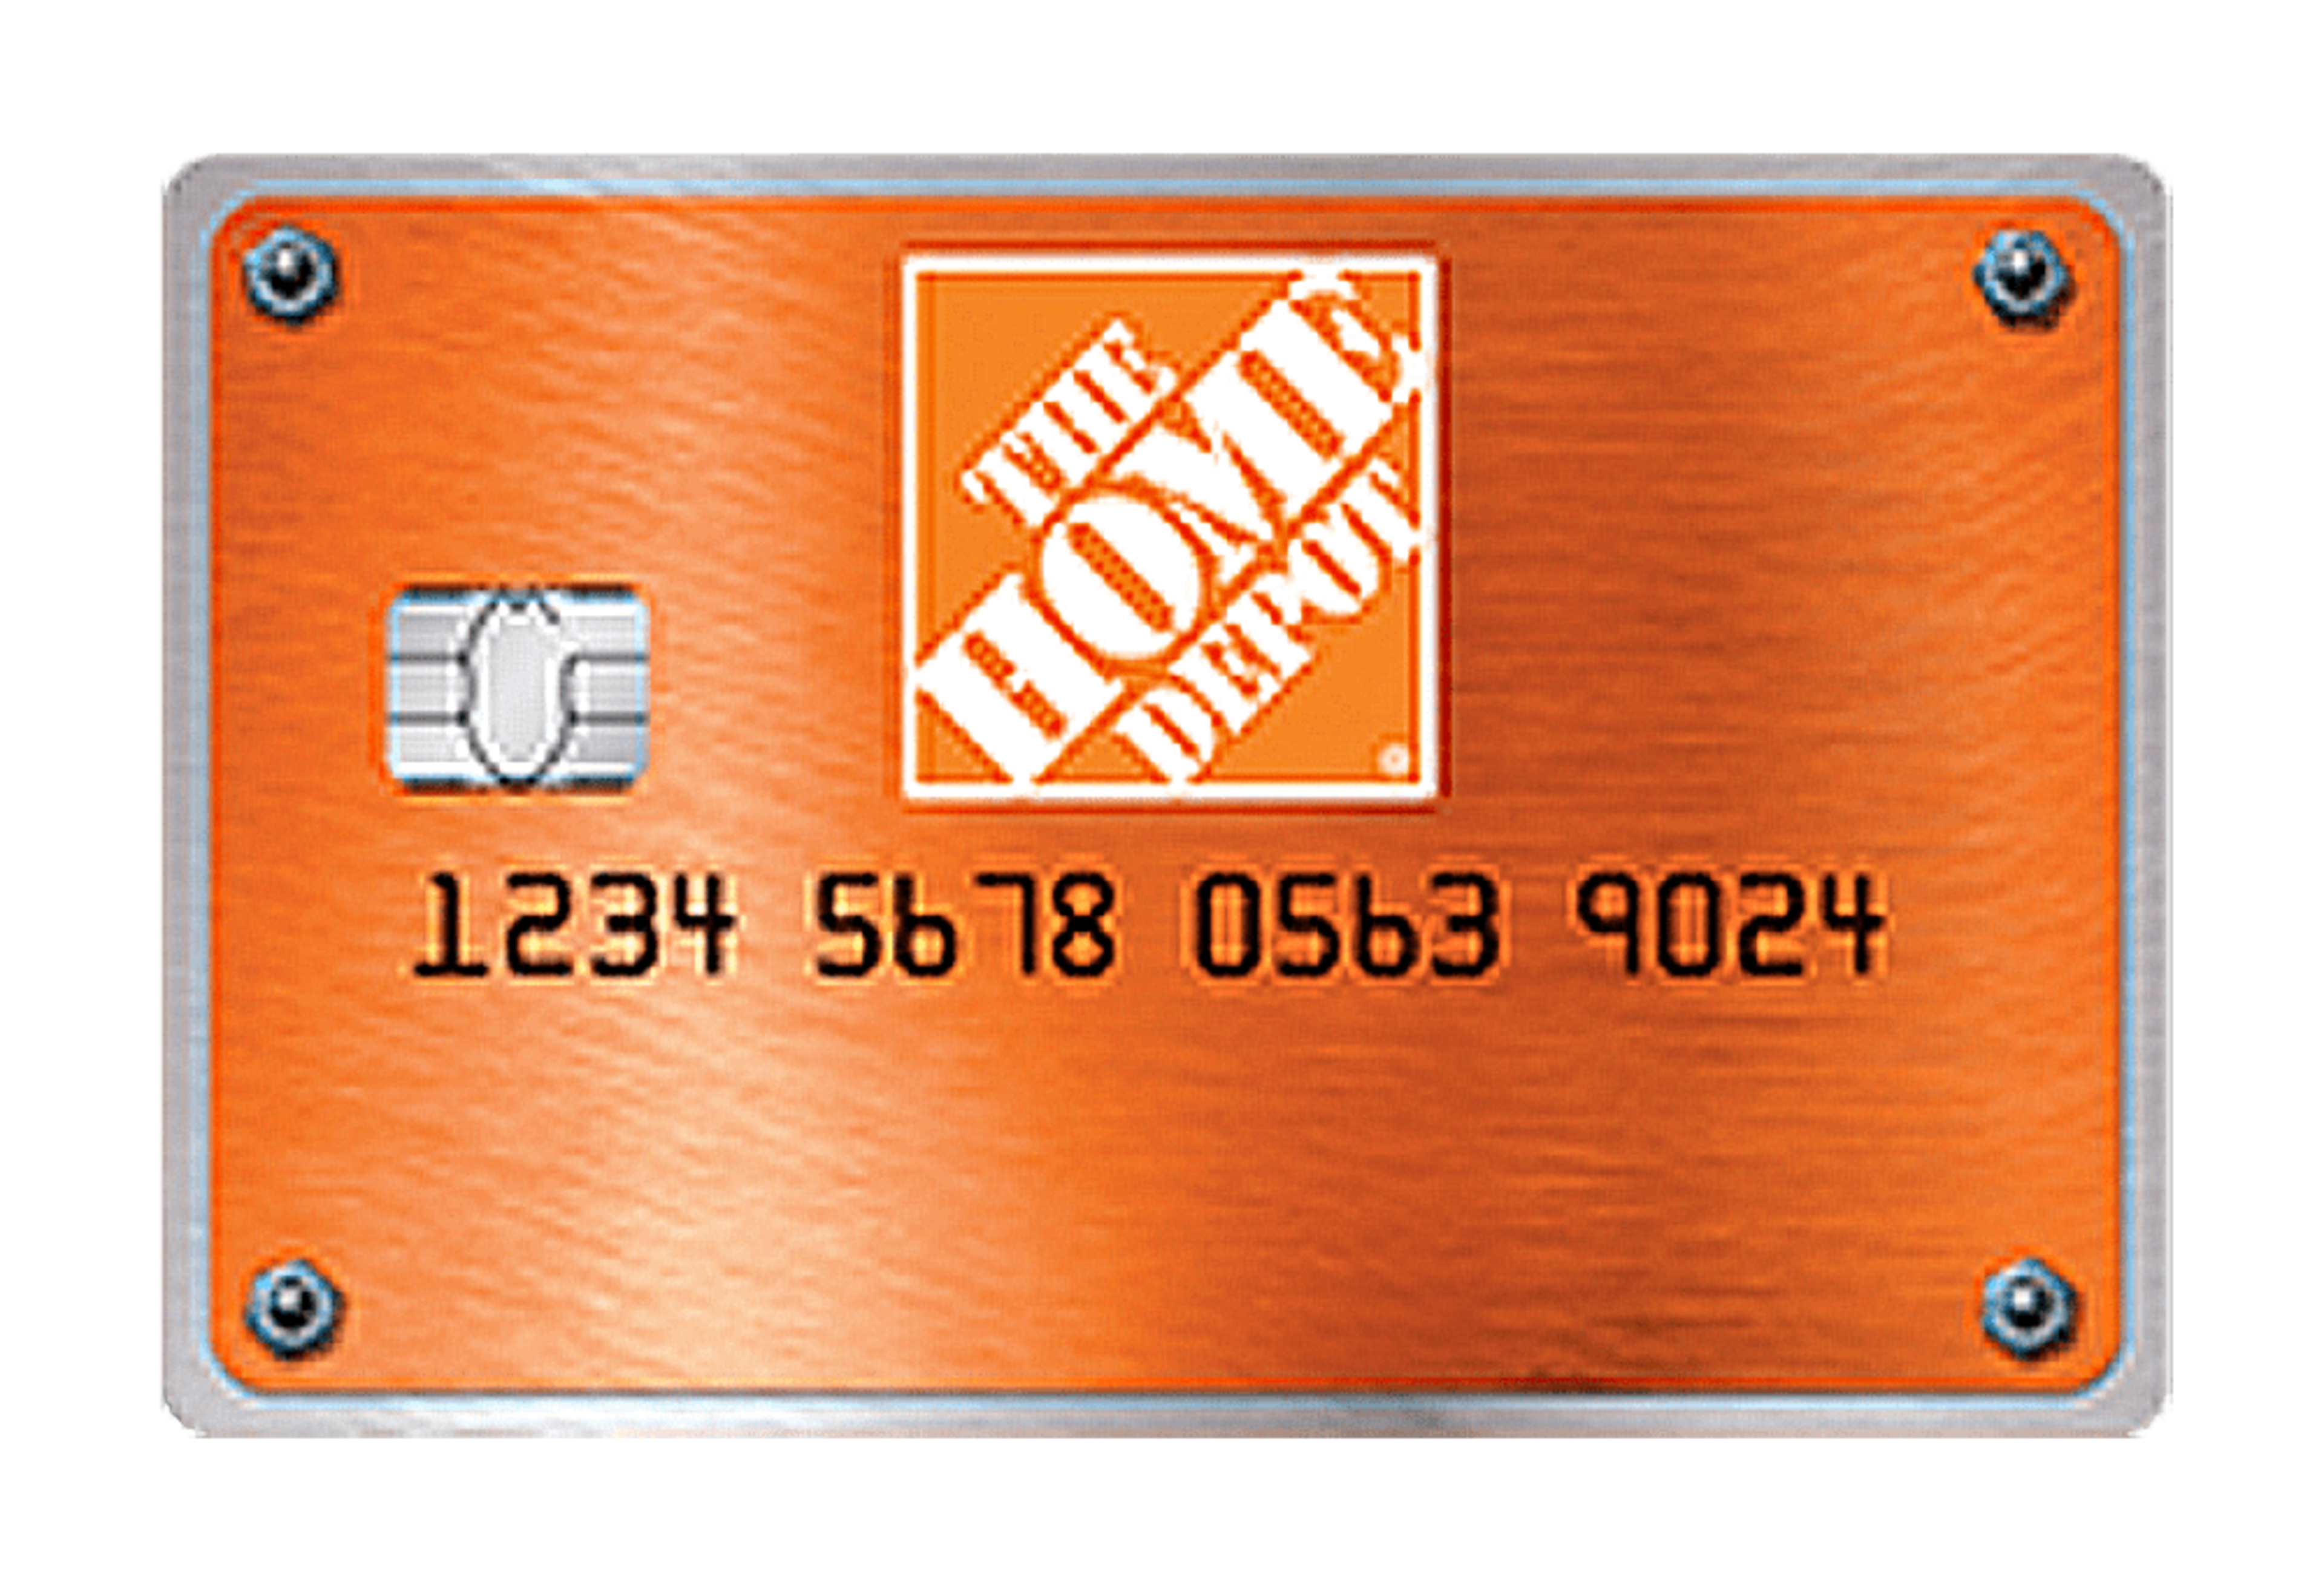 Home Depot Consumer Credit Card Managed by Tally.